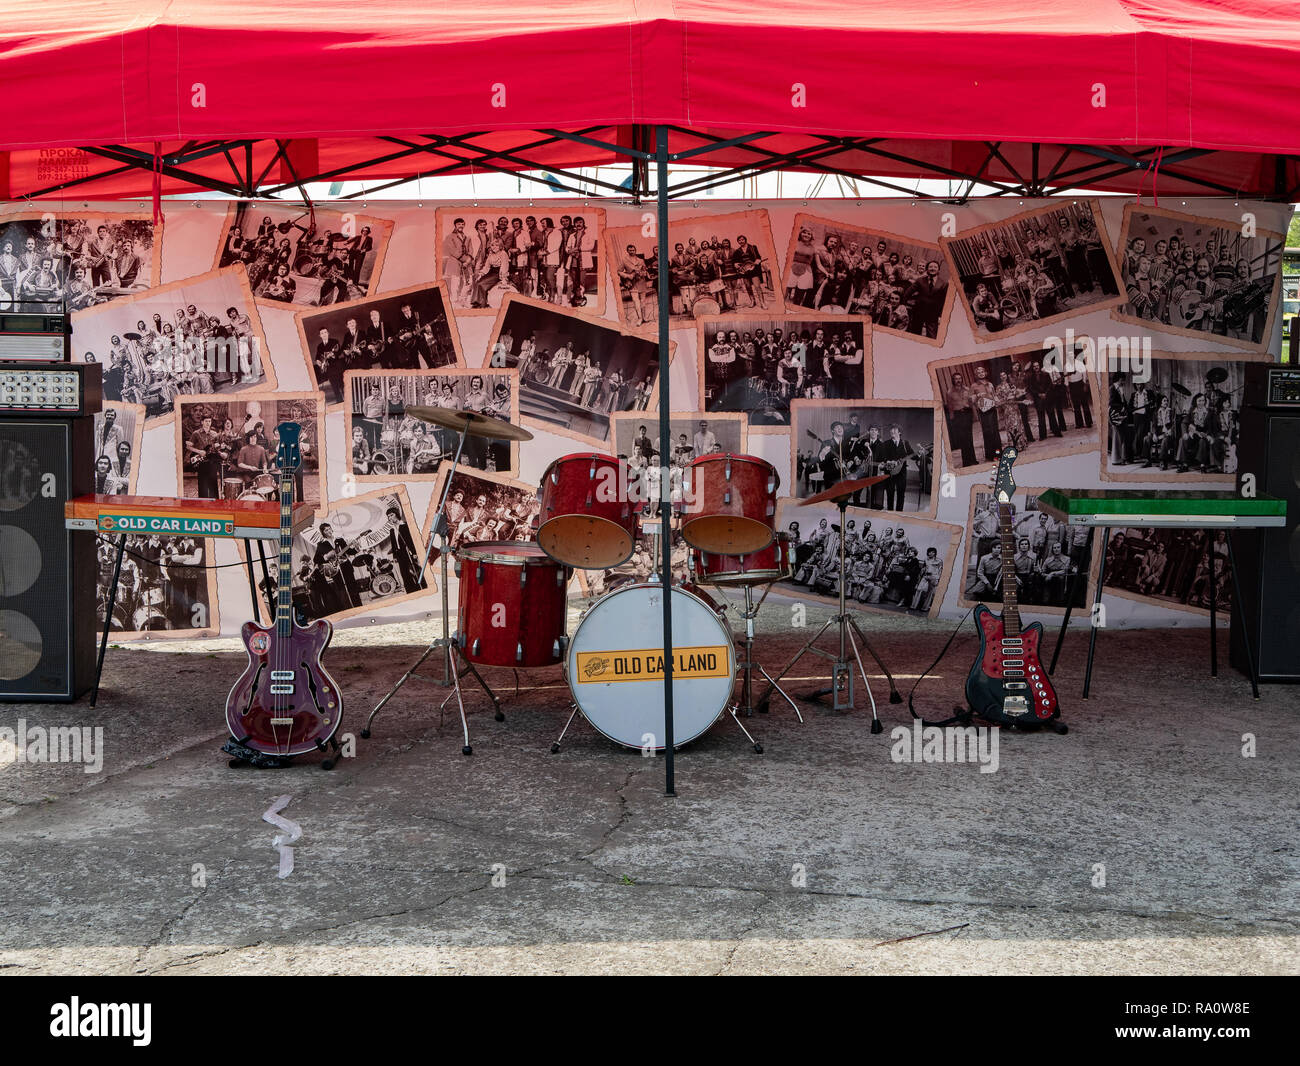 KYIV, UKRAINE - APRIL 28, 2018: Musical band instruments like guitars, drum kit and synthesizer at local fair under huge red umbrella with lot of vint - Stock Image